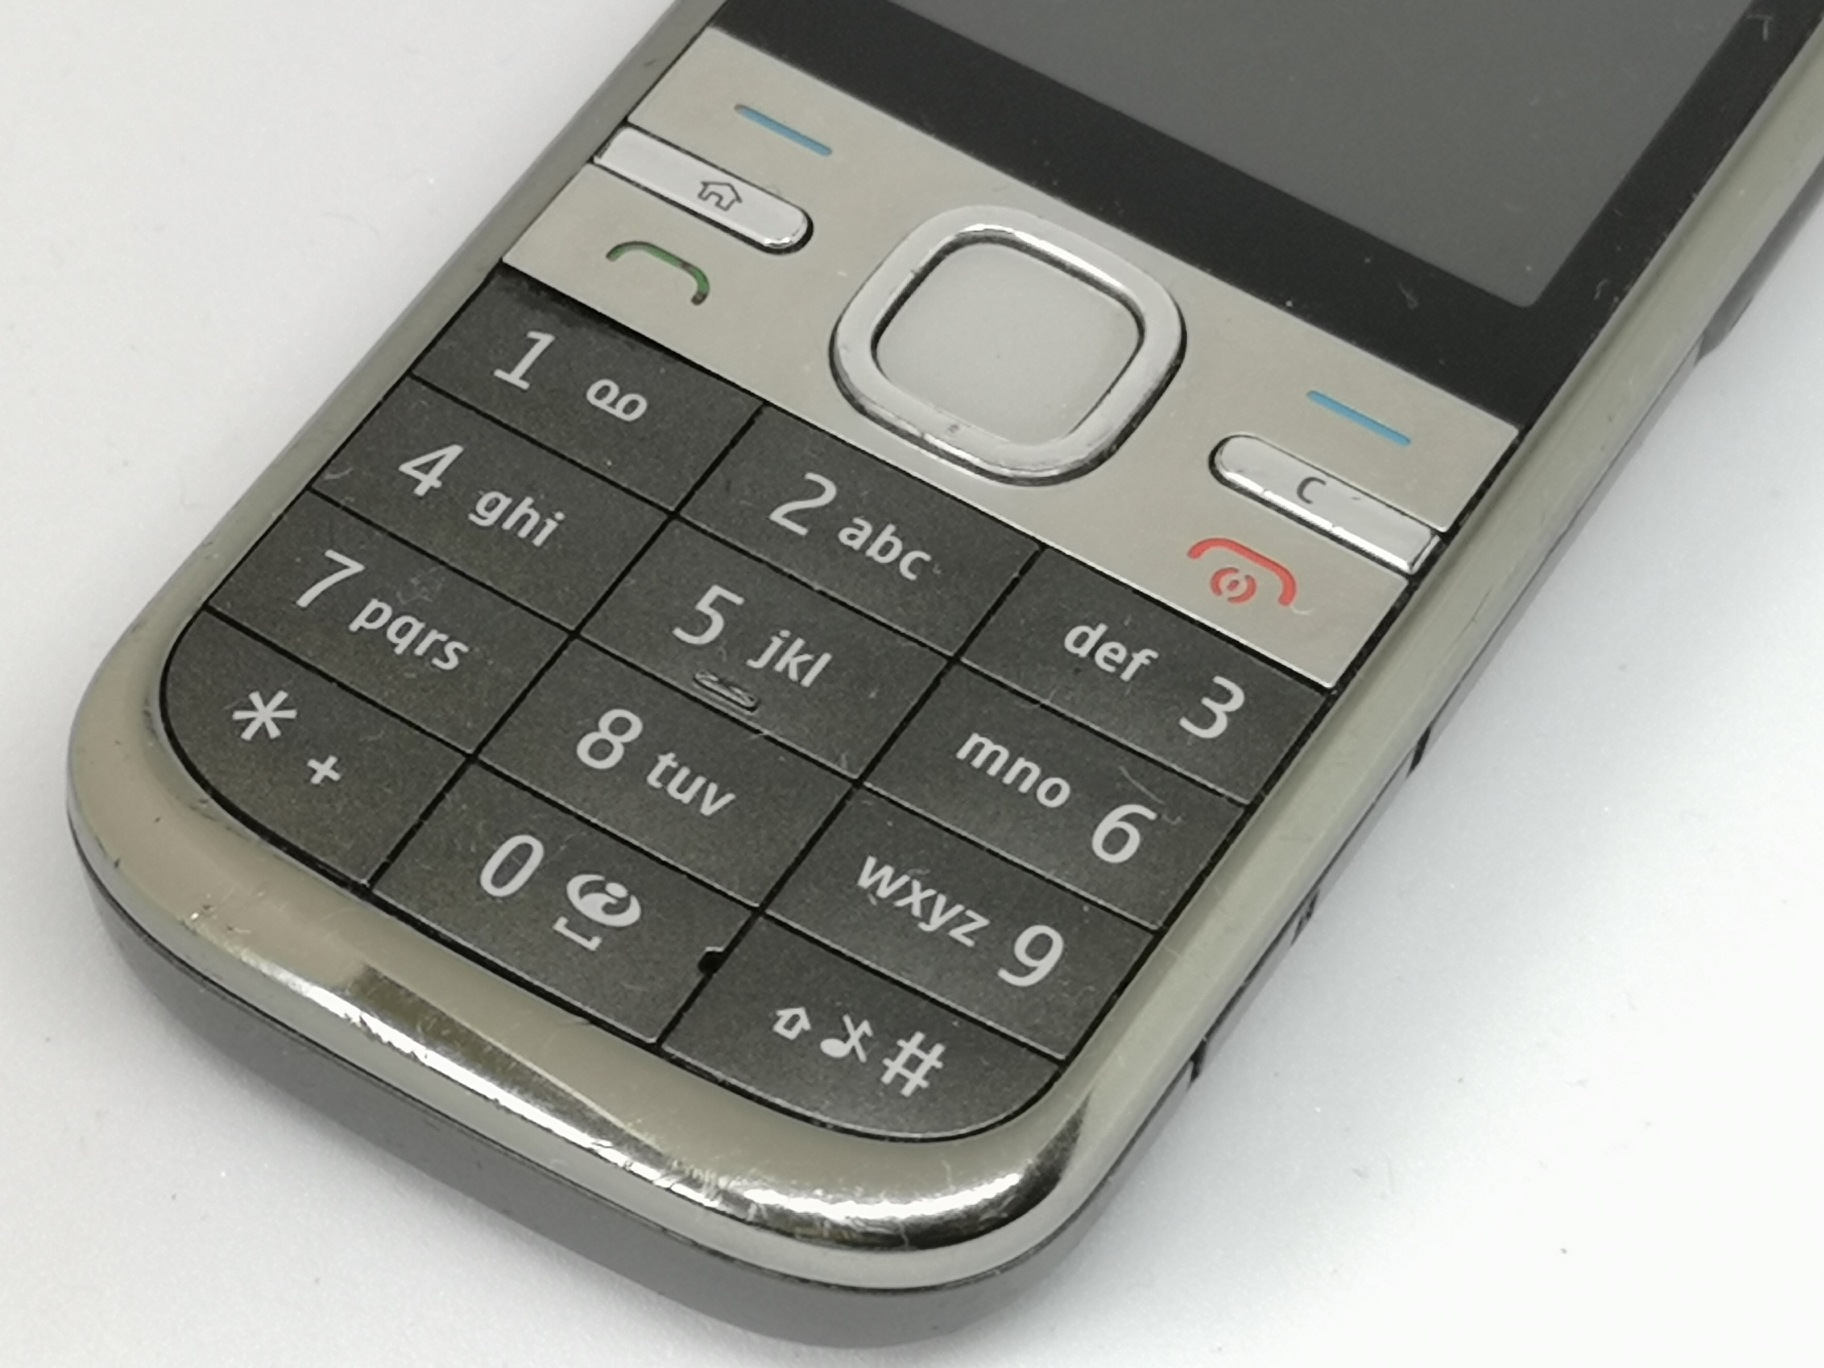 Nokia C5-00 Review - New Candybar Series of Mobile Phone